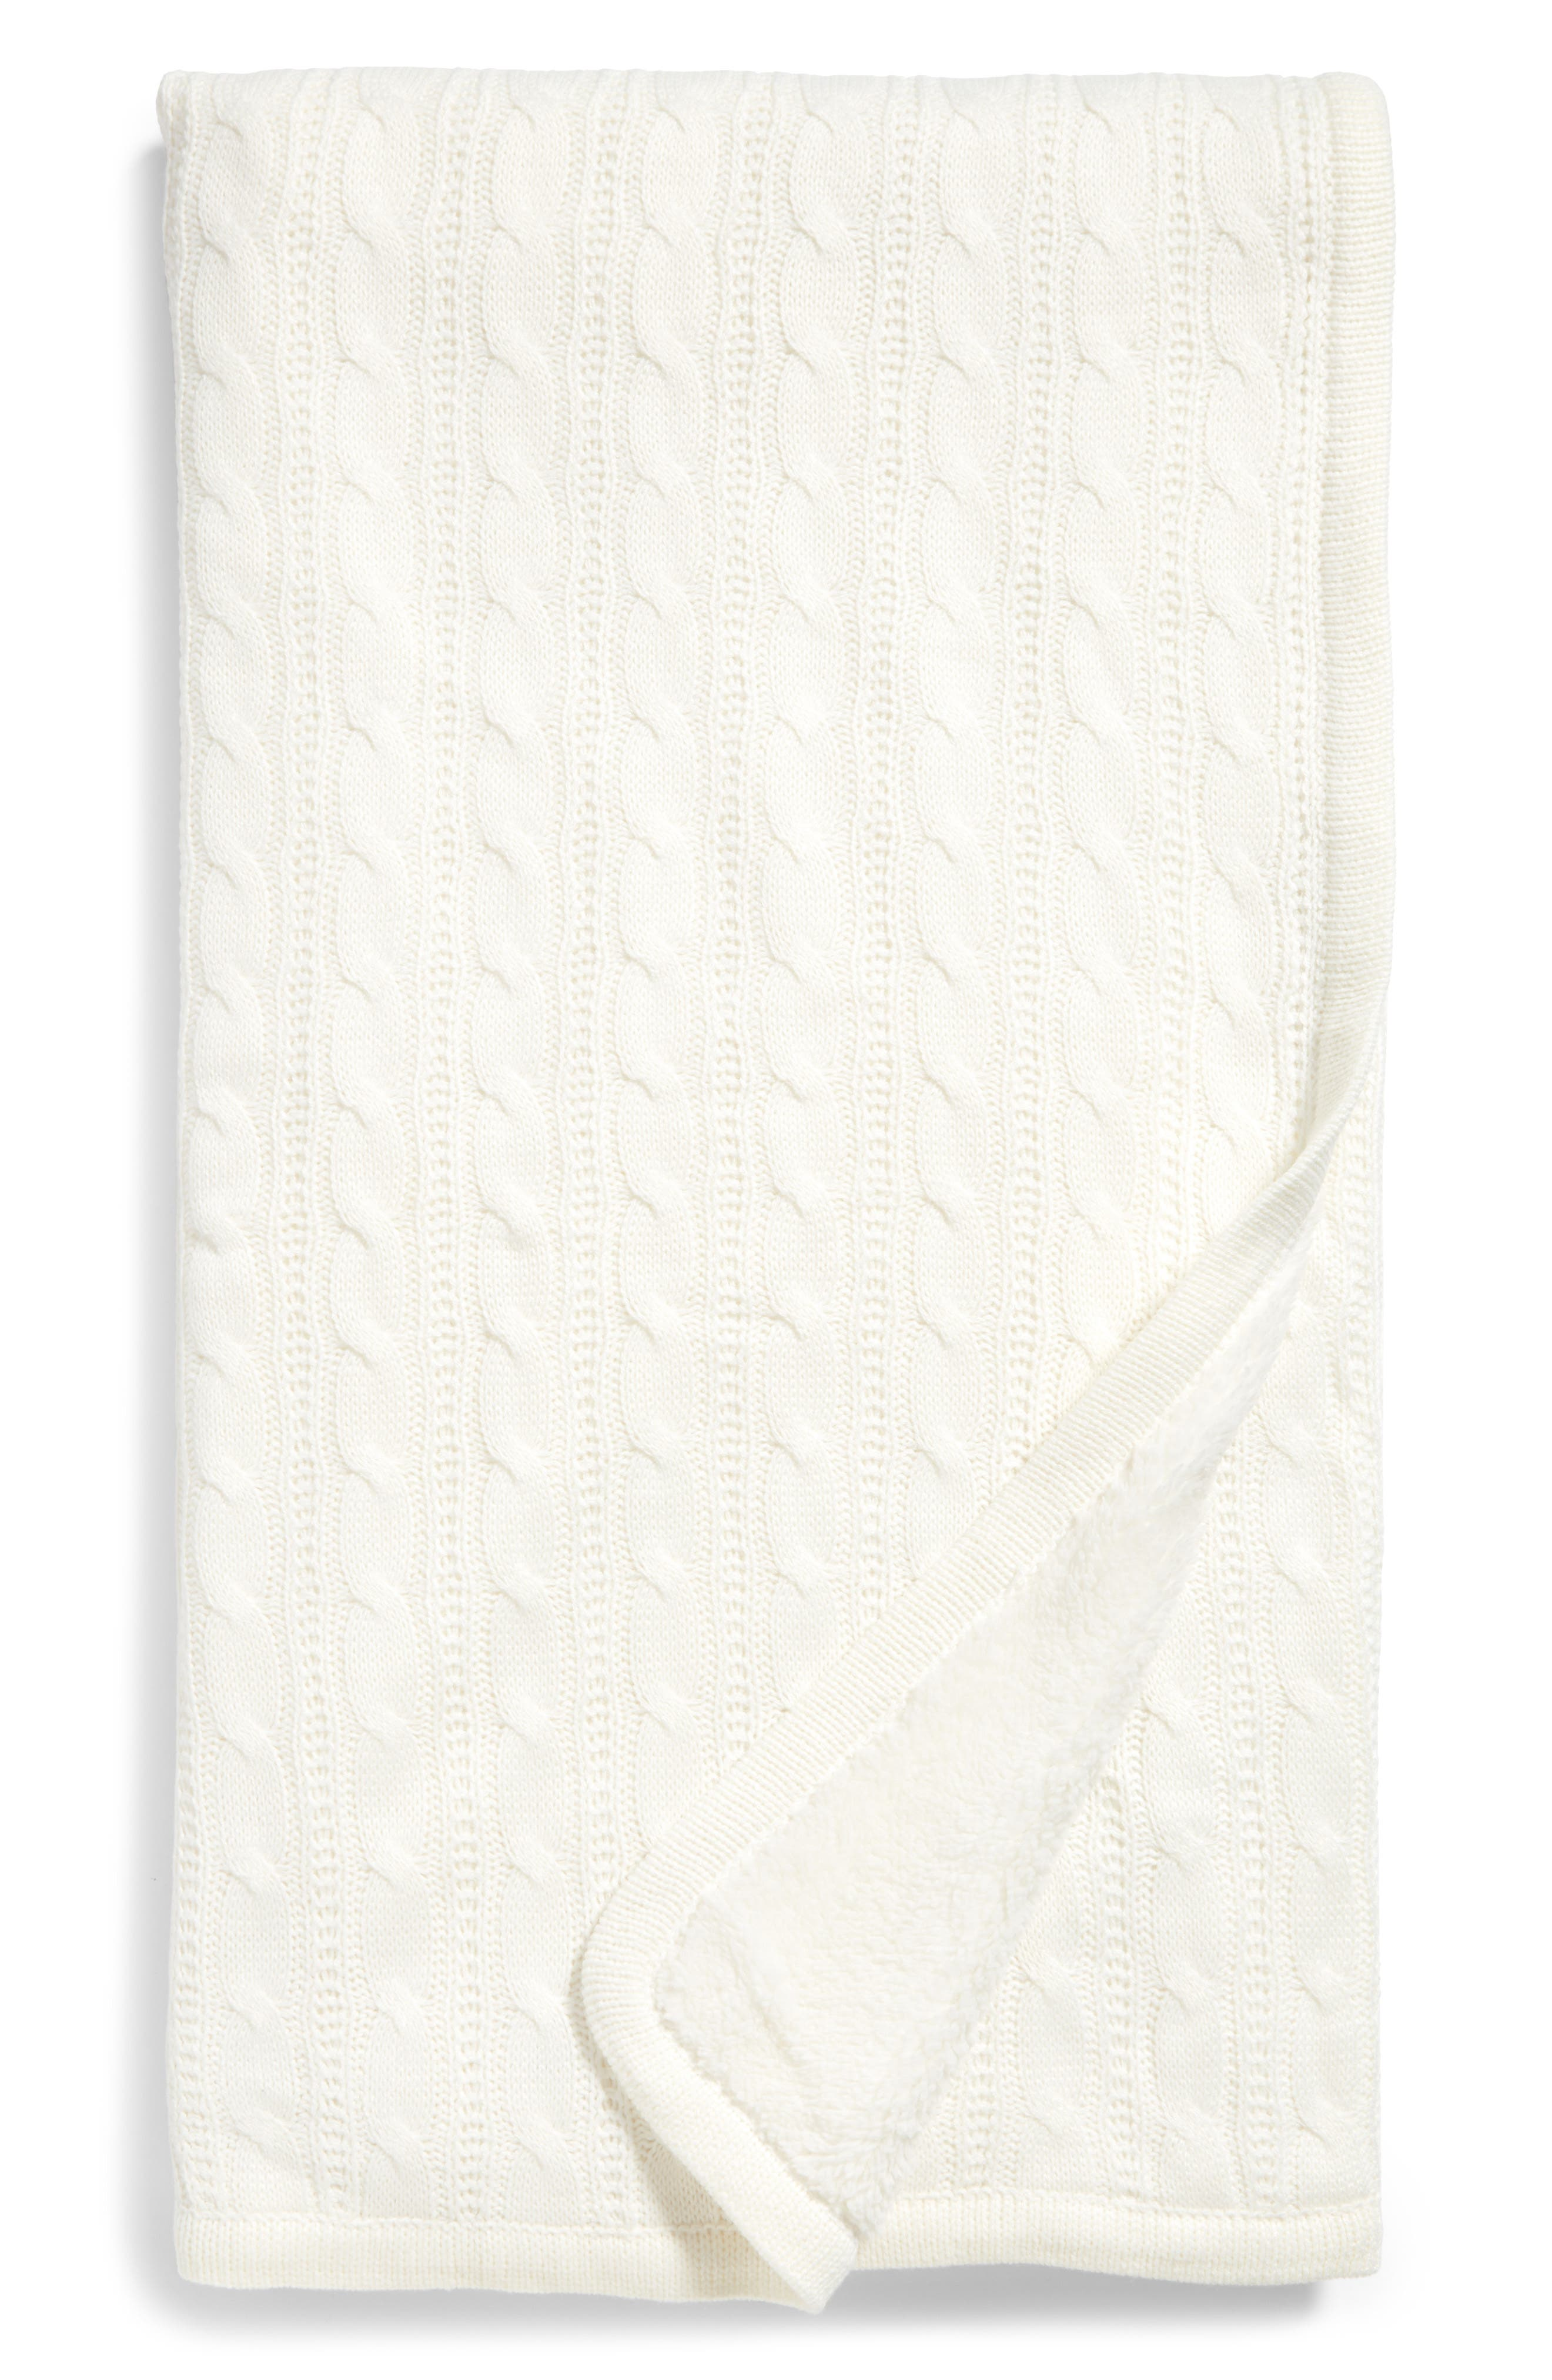 Levtex Cable Knit Throw Blanket